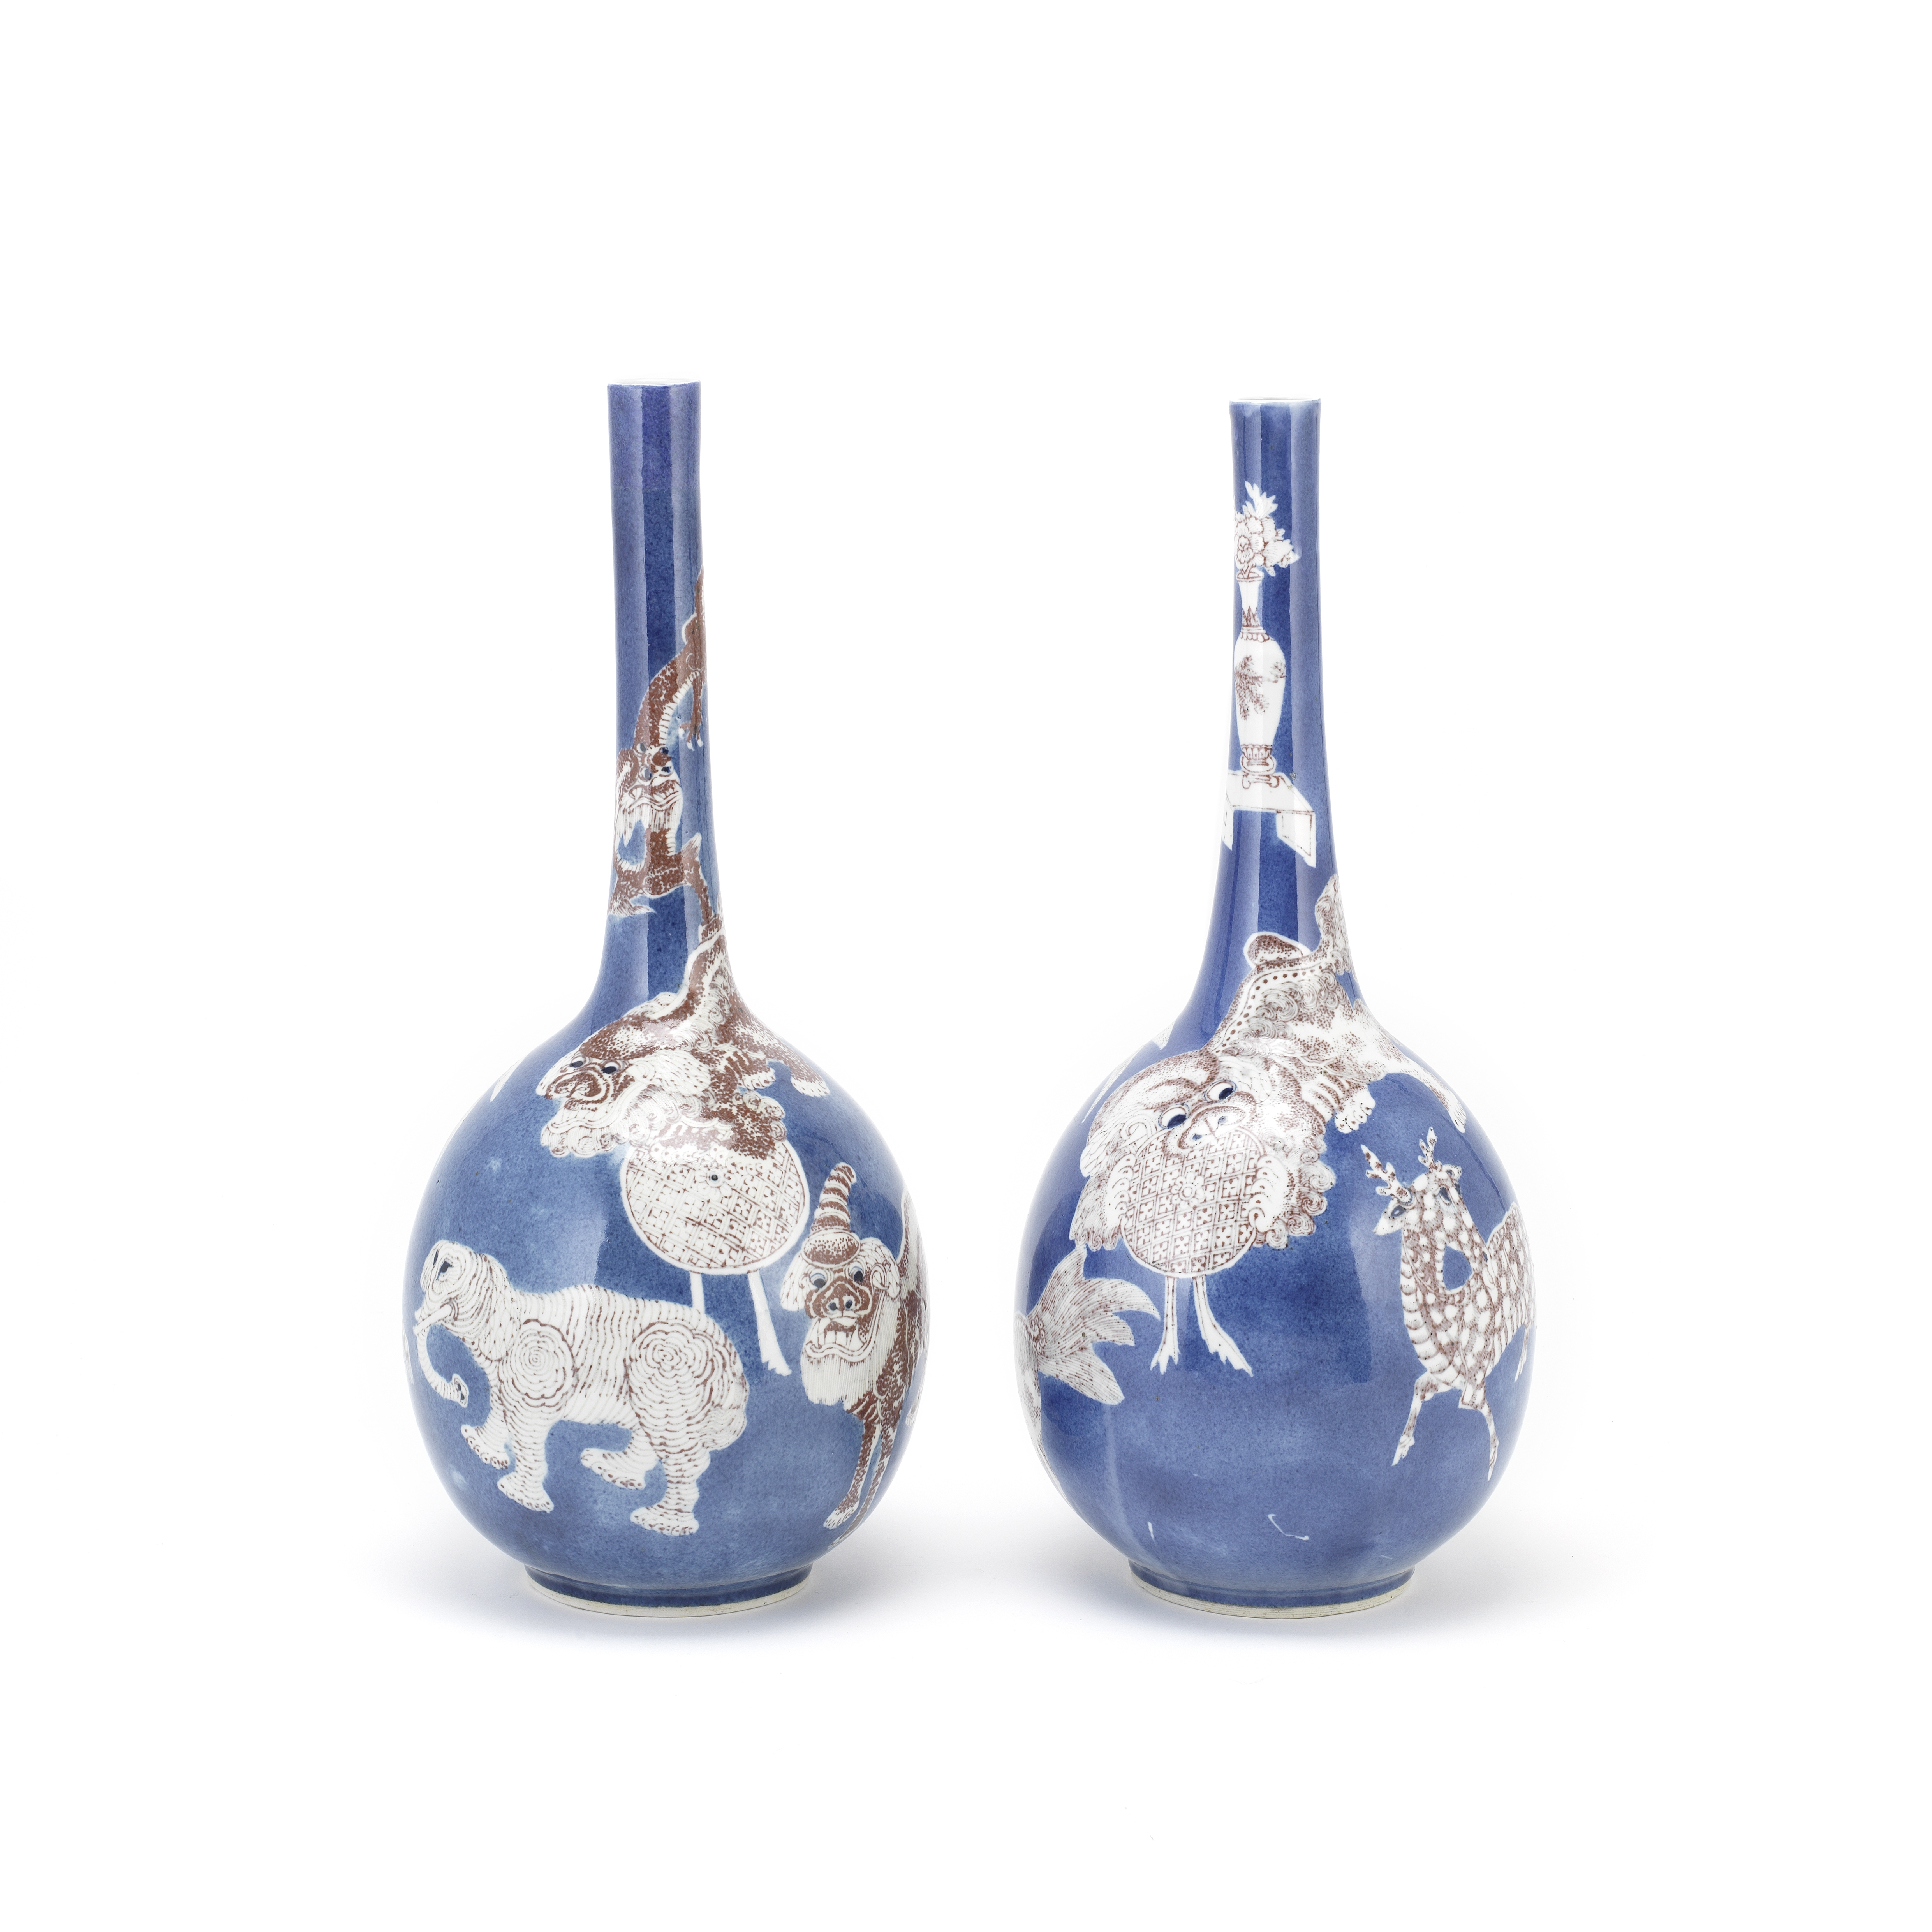 A PAIR OF POWDER BLUE AND COPPER RED DECORATED BOTTLE VASES 19th century (2)